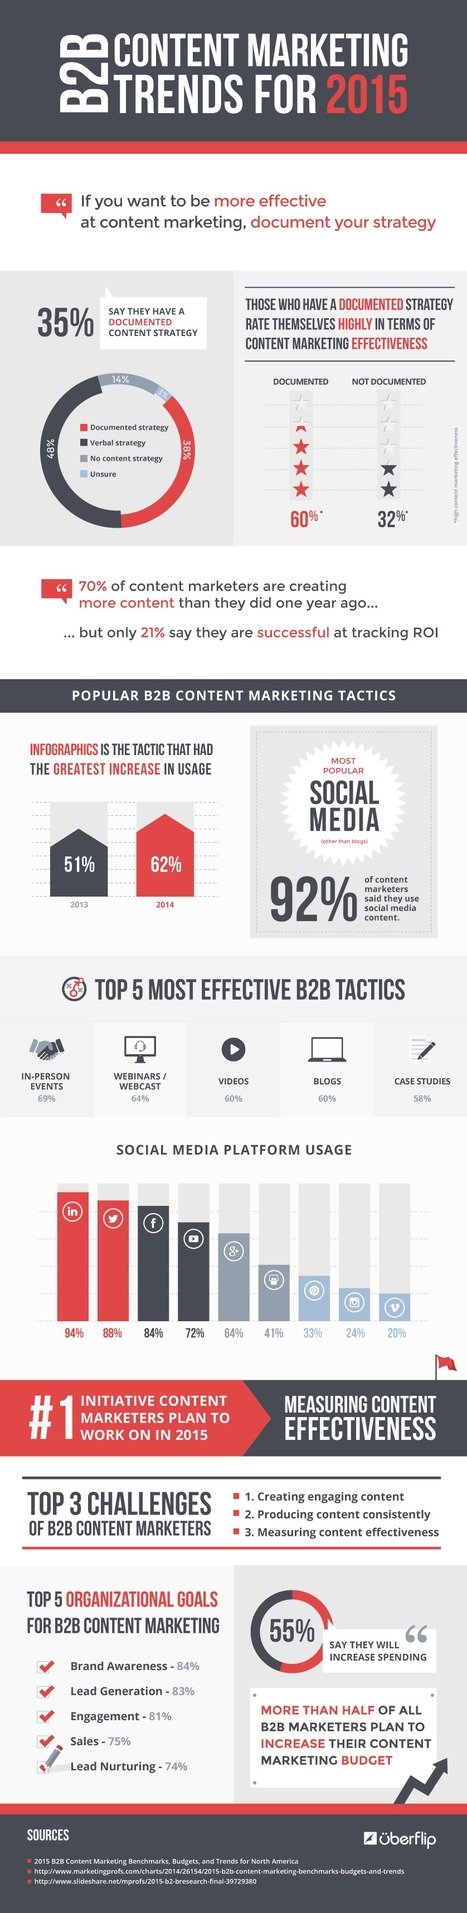 2015 Social Media and Content Trends for B2B Marketers [INFOGRAPHIC] | MarketingHits | Scoop.it